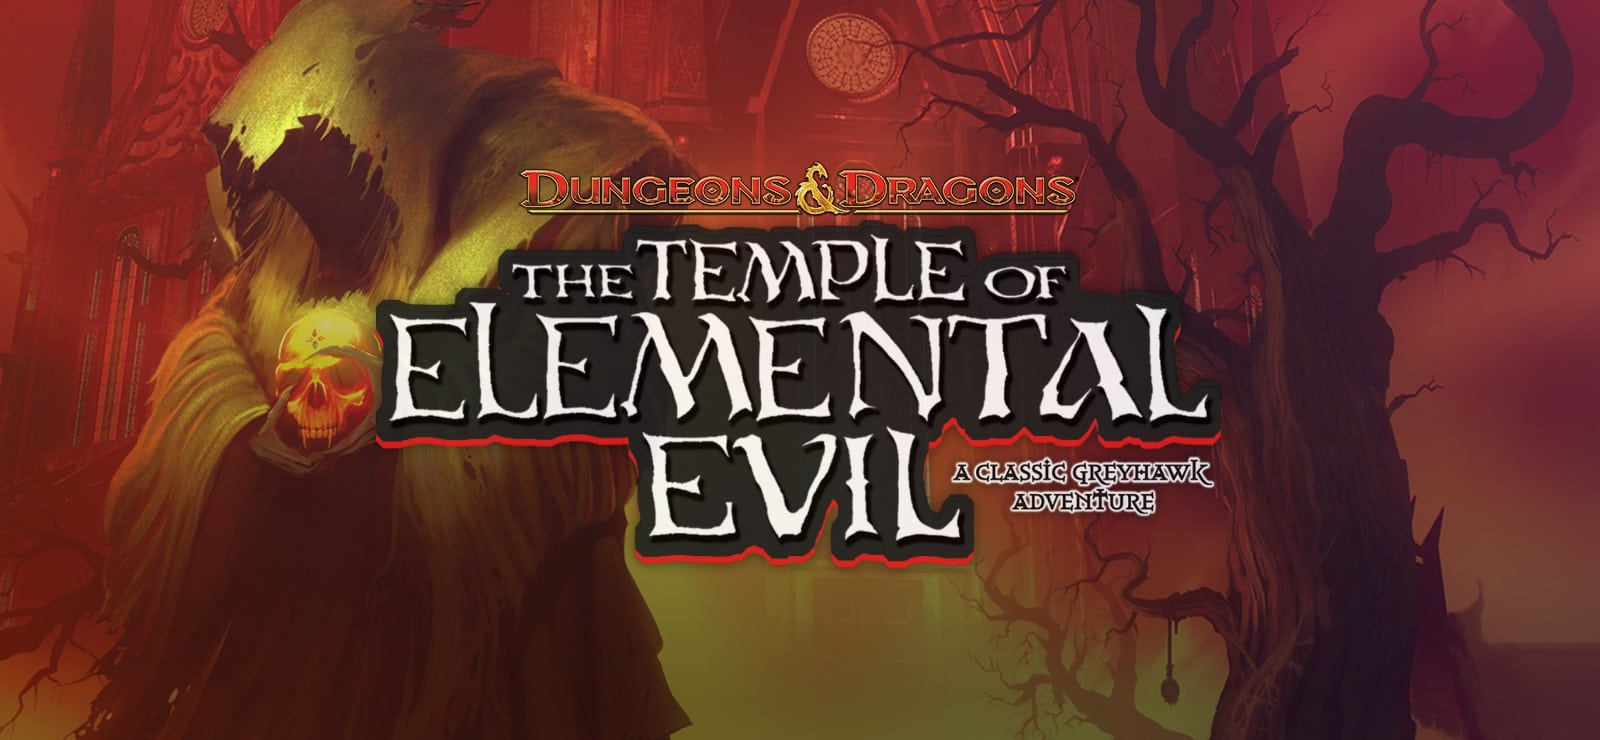 The Temple Of Elemental Evil varies-with-device